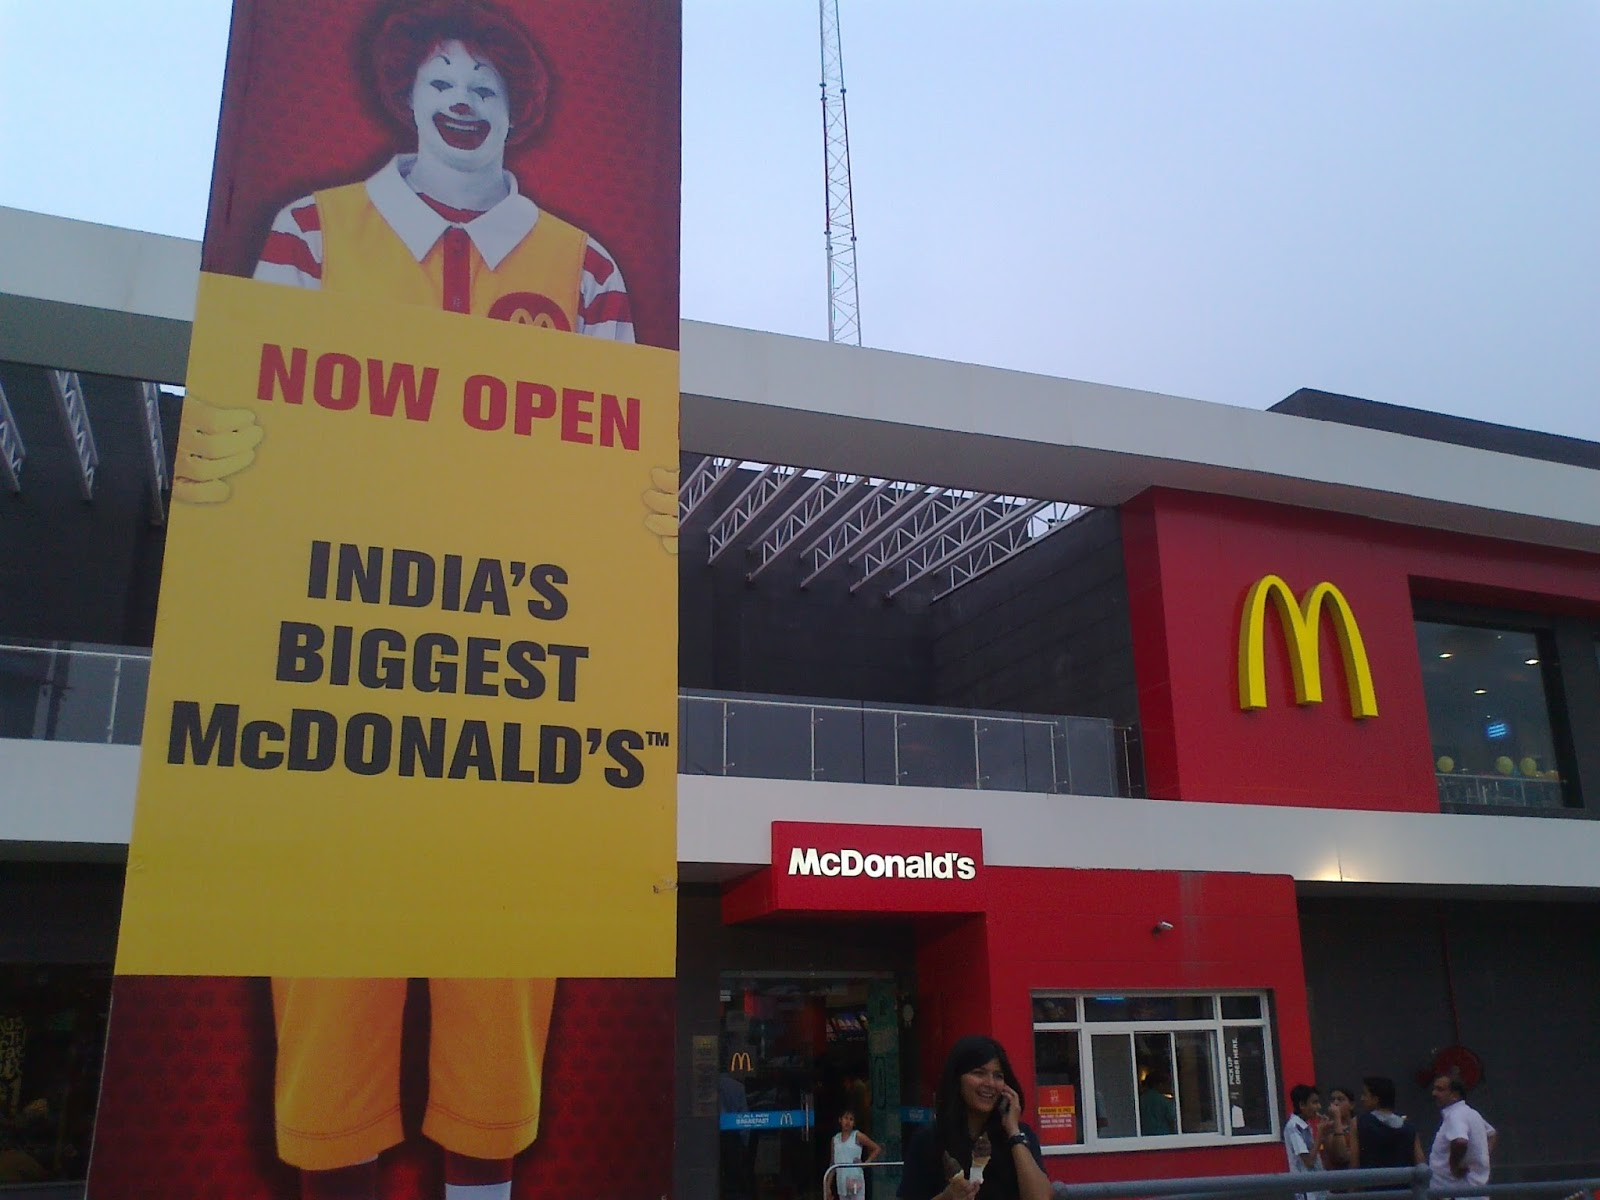 India's Biggest McDonald in Noida